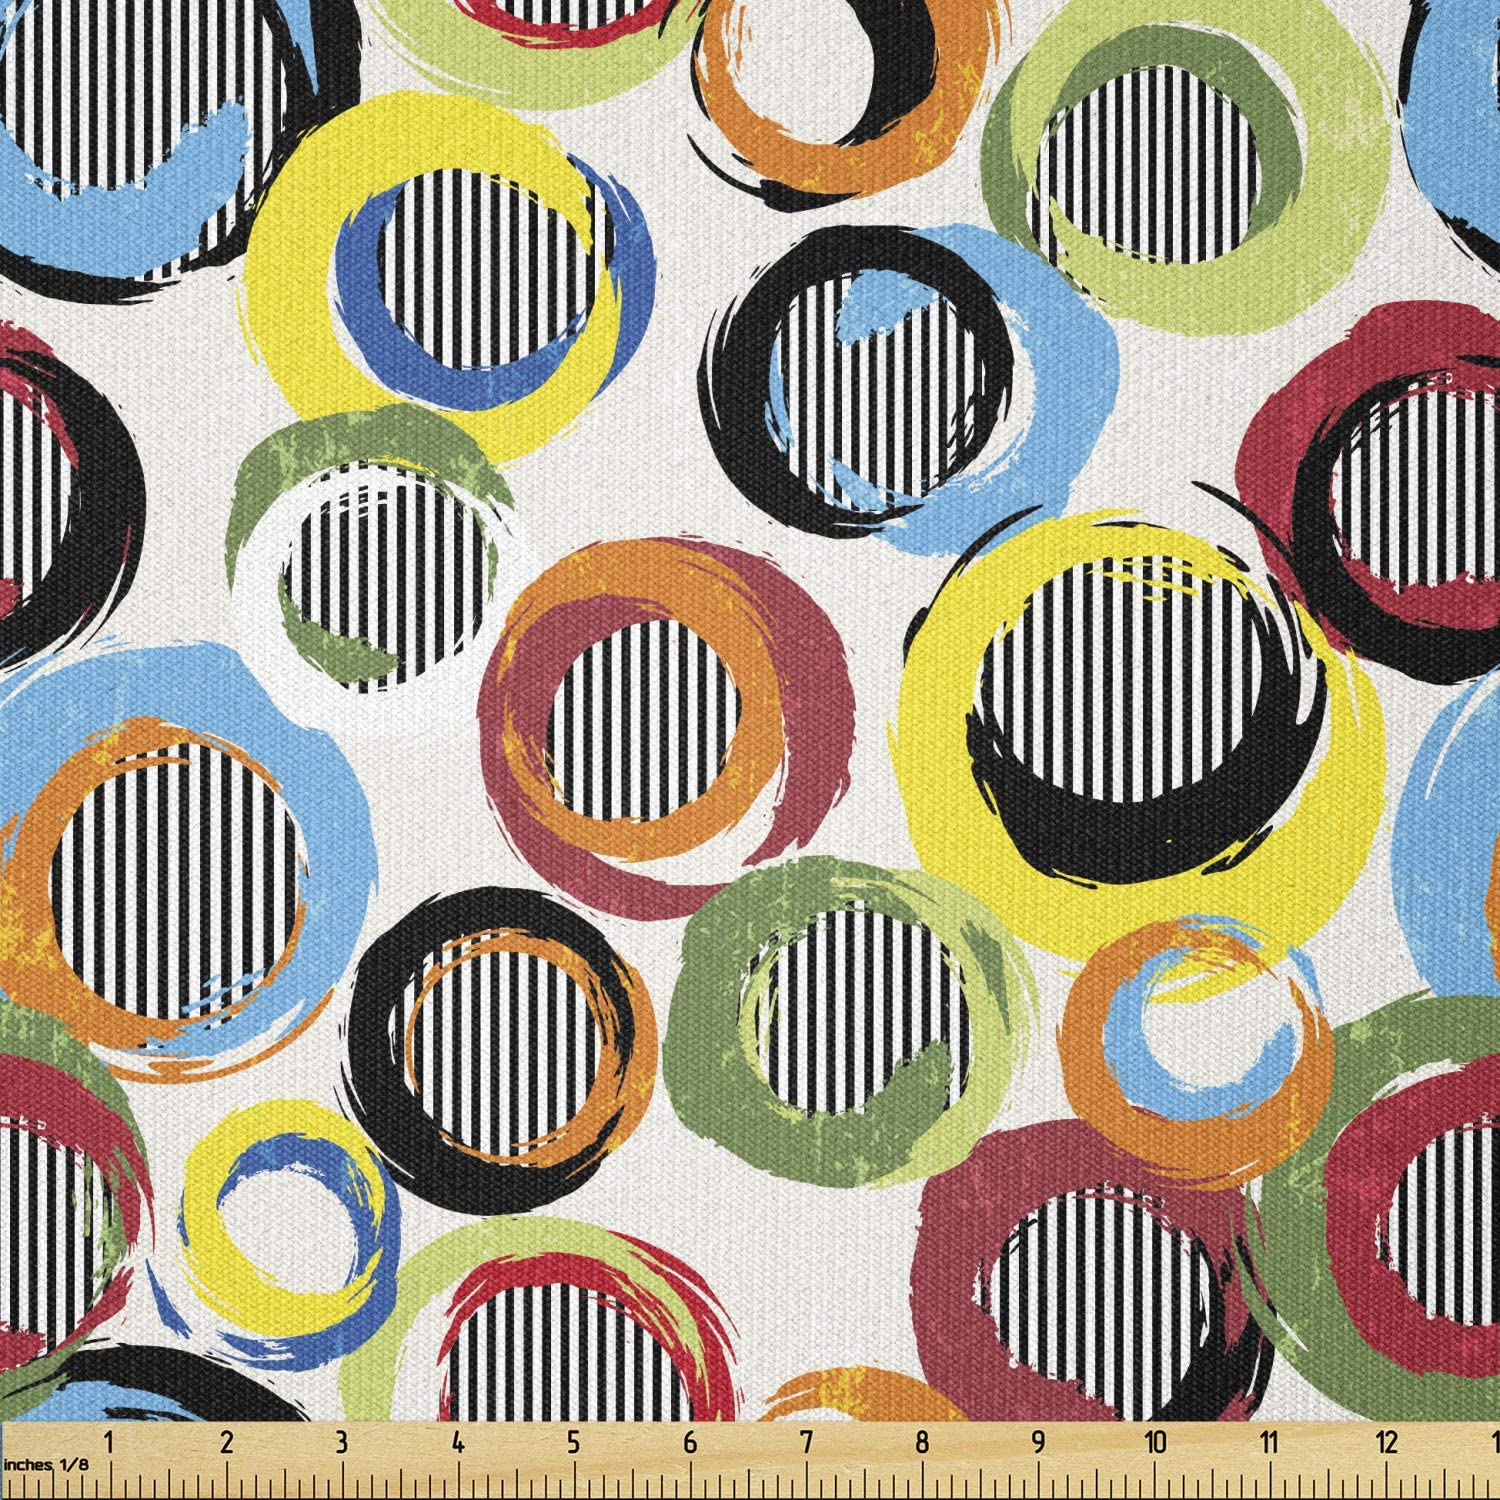 Lunarable Colorful Fabric by The Circles Max 59% OFF Topics on TV and Yard Vibrant Funky